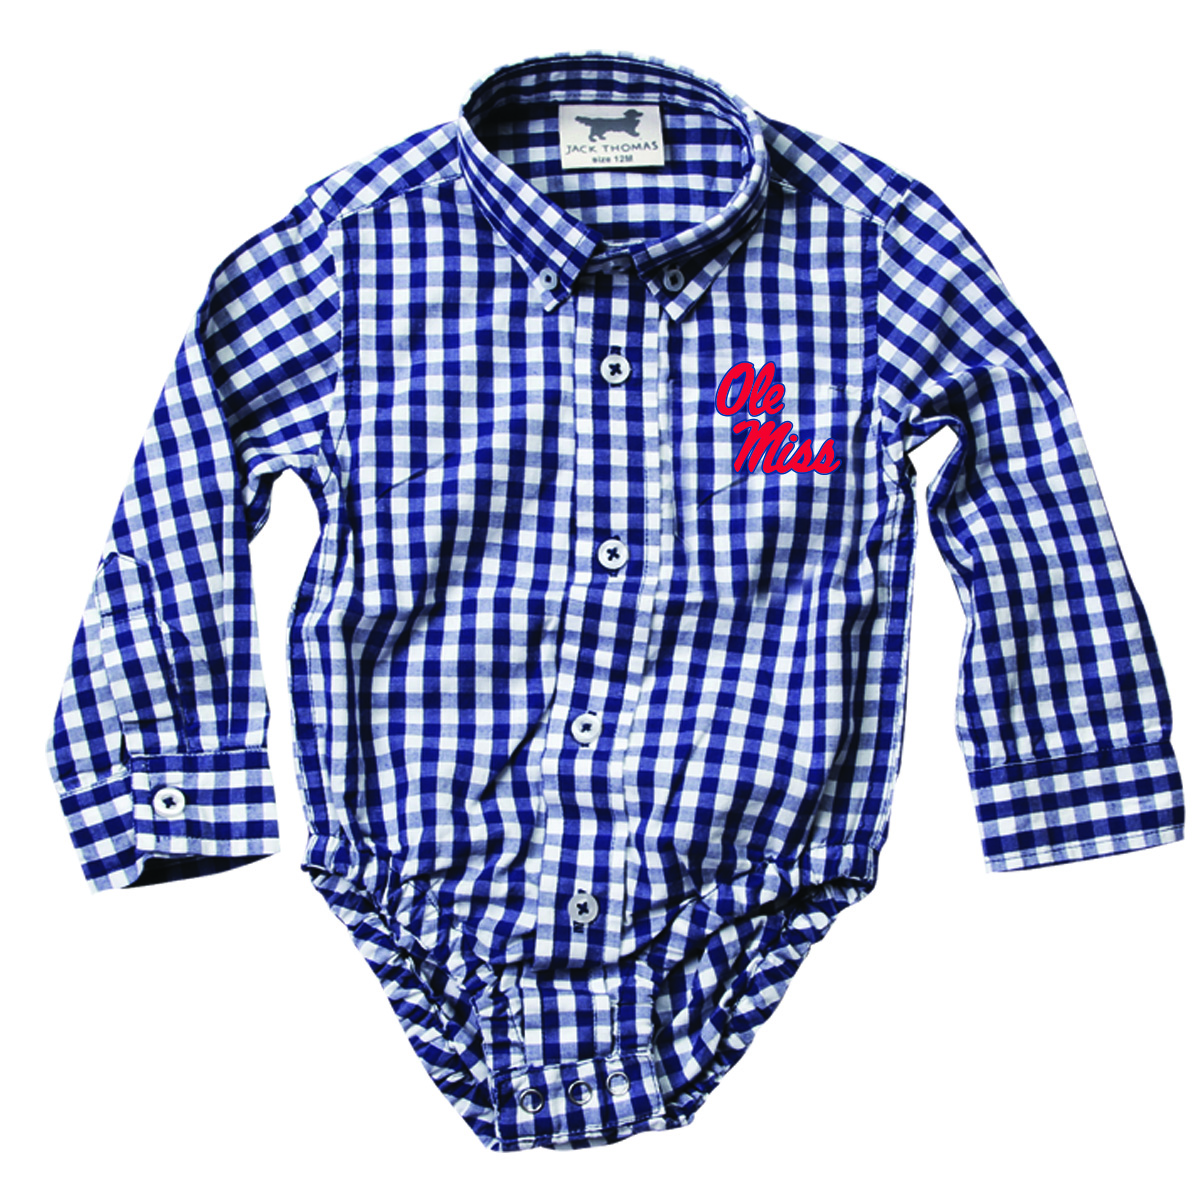 MSLS Embroidered Gingham Onesie Midnight 18M